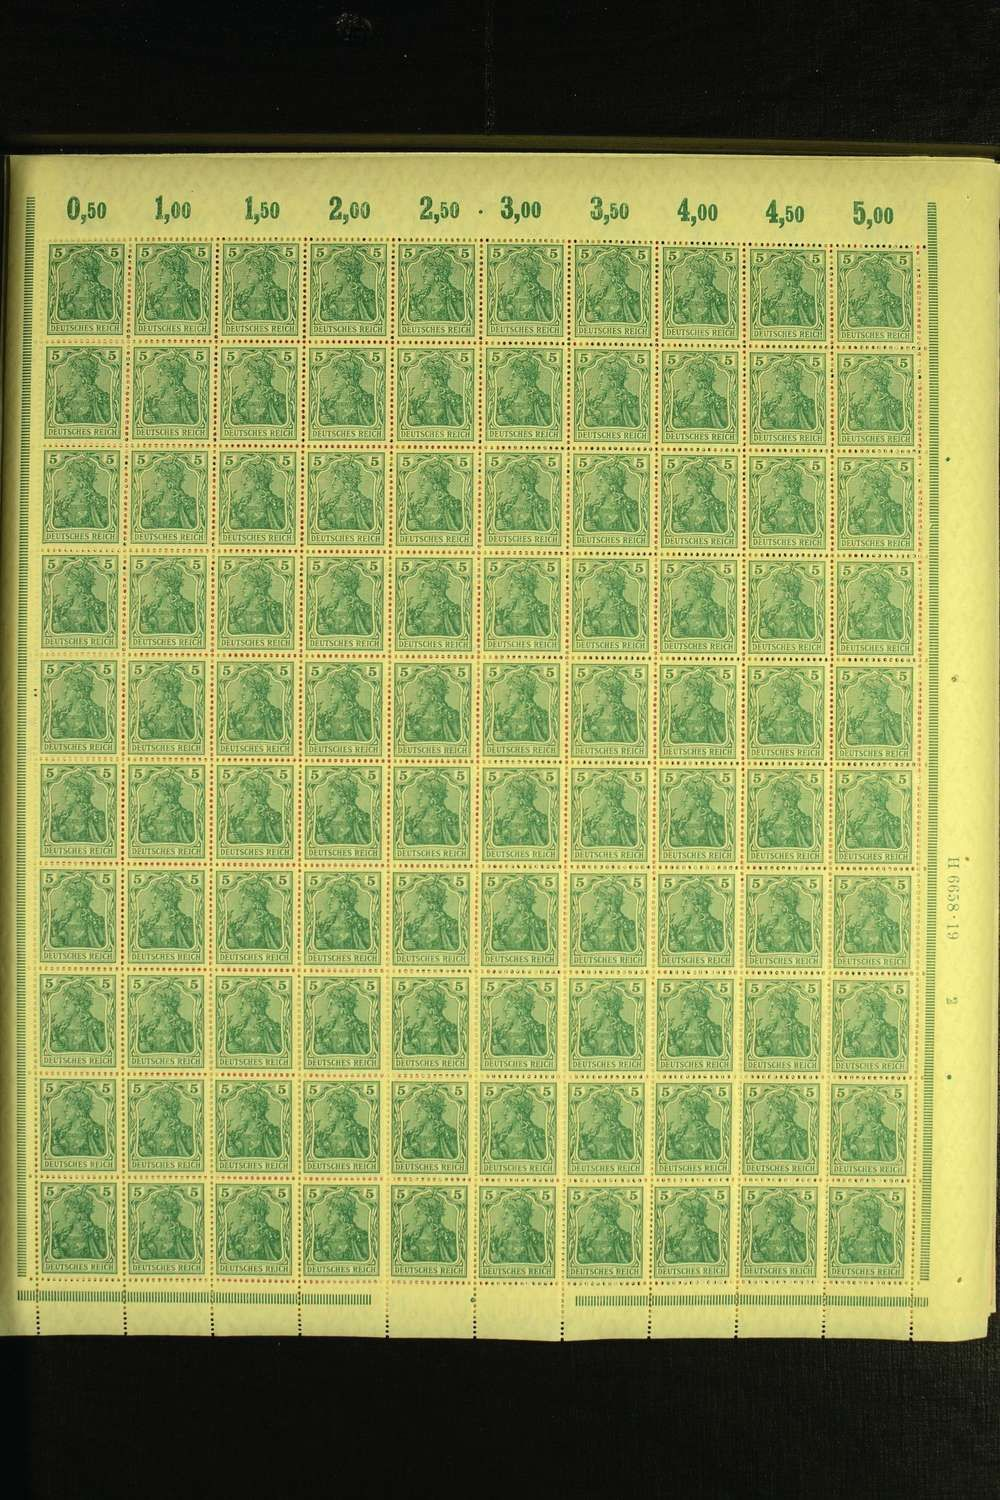 Philasearch.com - German Empire. ENGROS and sheets: 1915 / 19, Germania war issue Michel-no. 85.87-90 and 92-93 always in mint n.h. Sheets (HAN and so on. Not calculated 2. 490,-)  Lot condition **   Dealer Heinrich Köhler Auctions  Auction Starting Price: 800.00 EUR